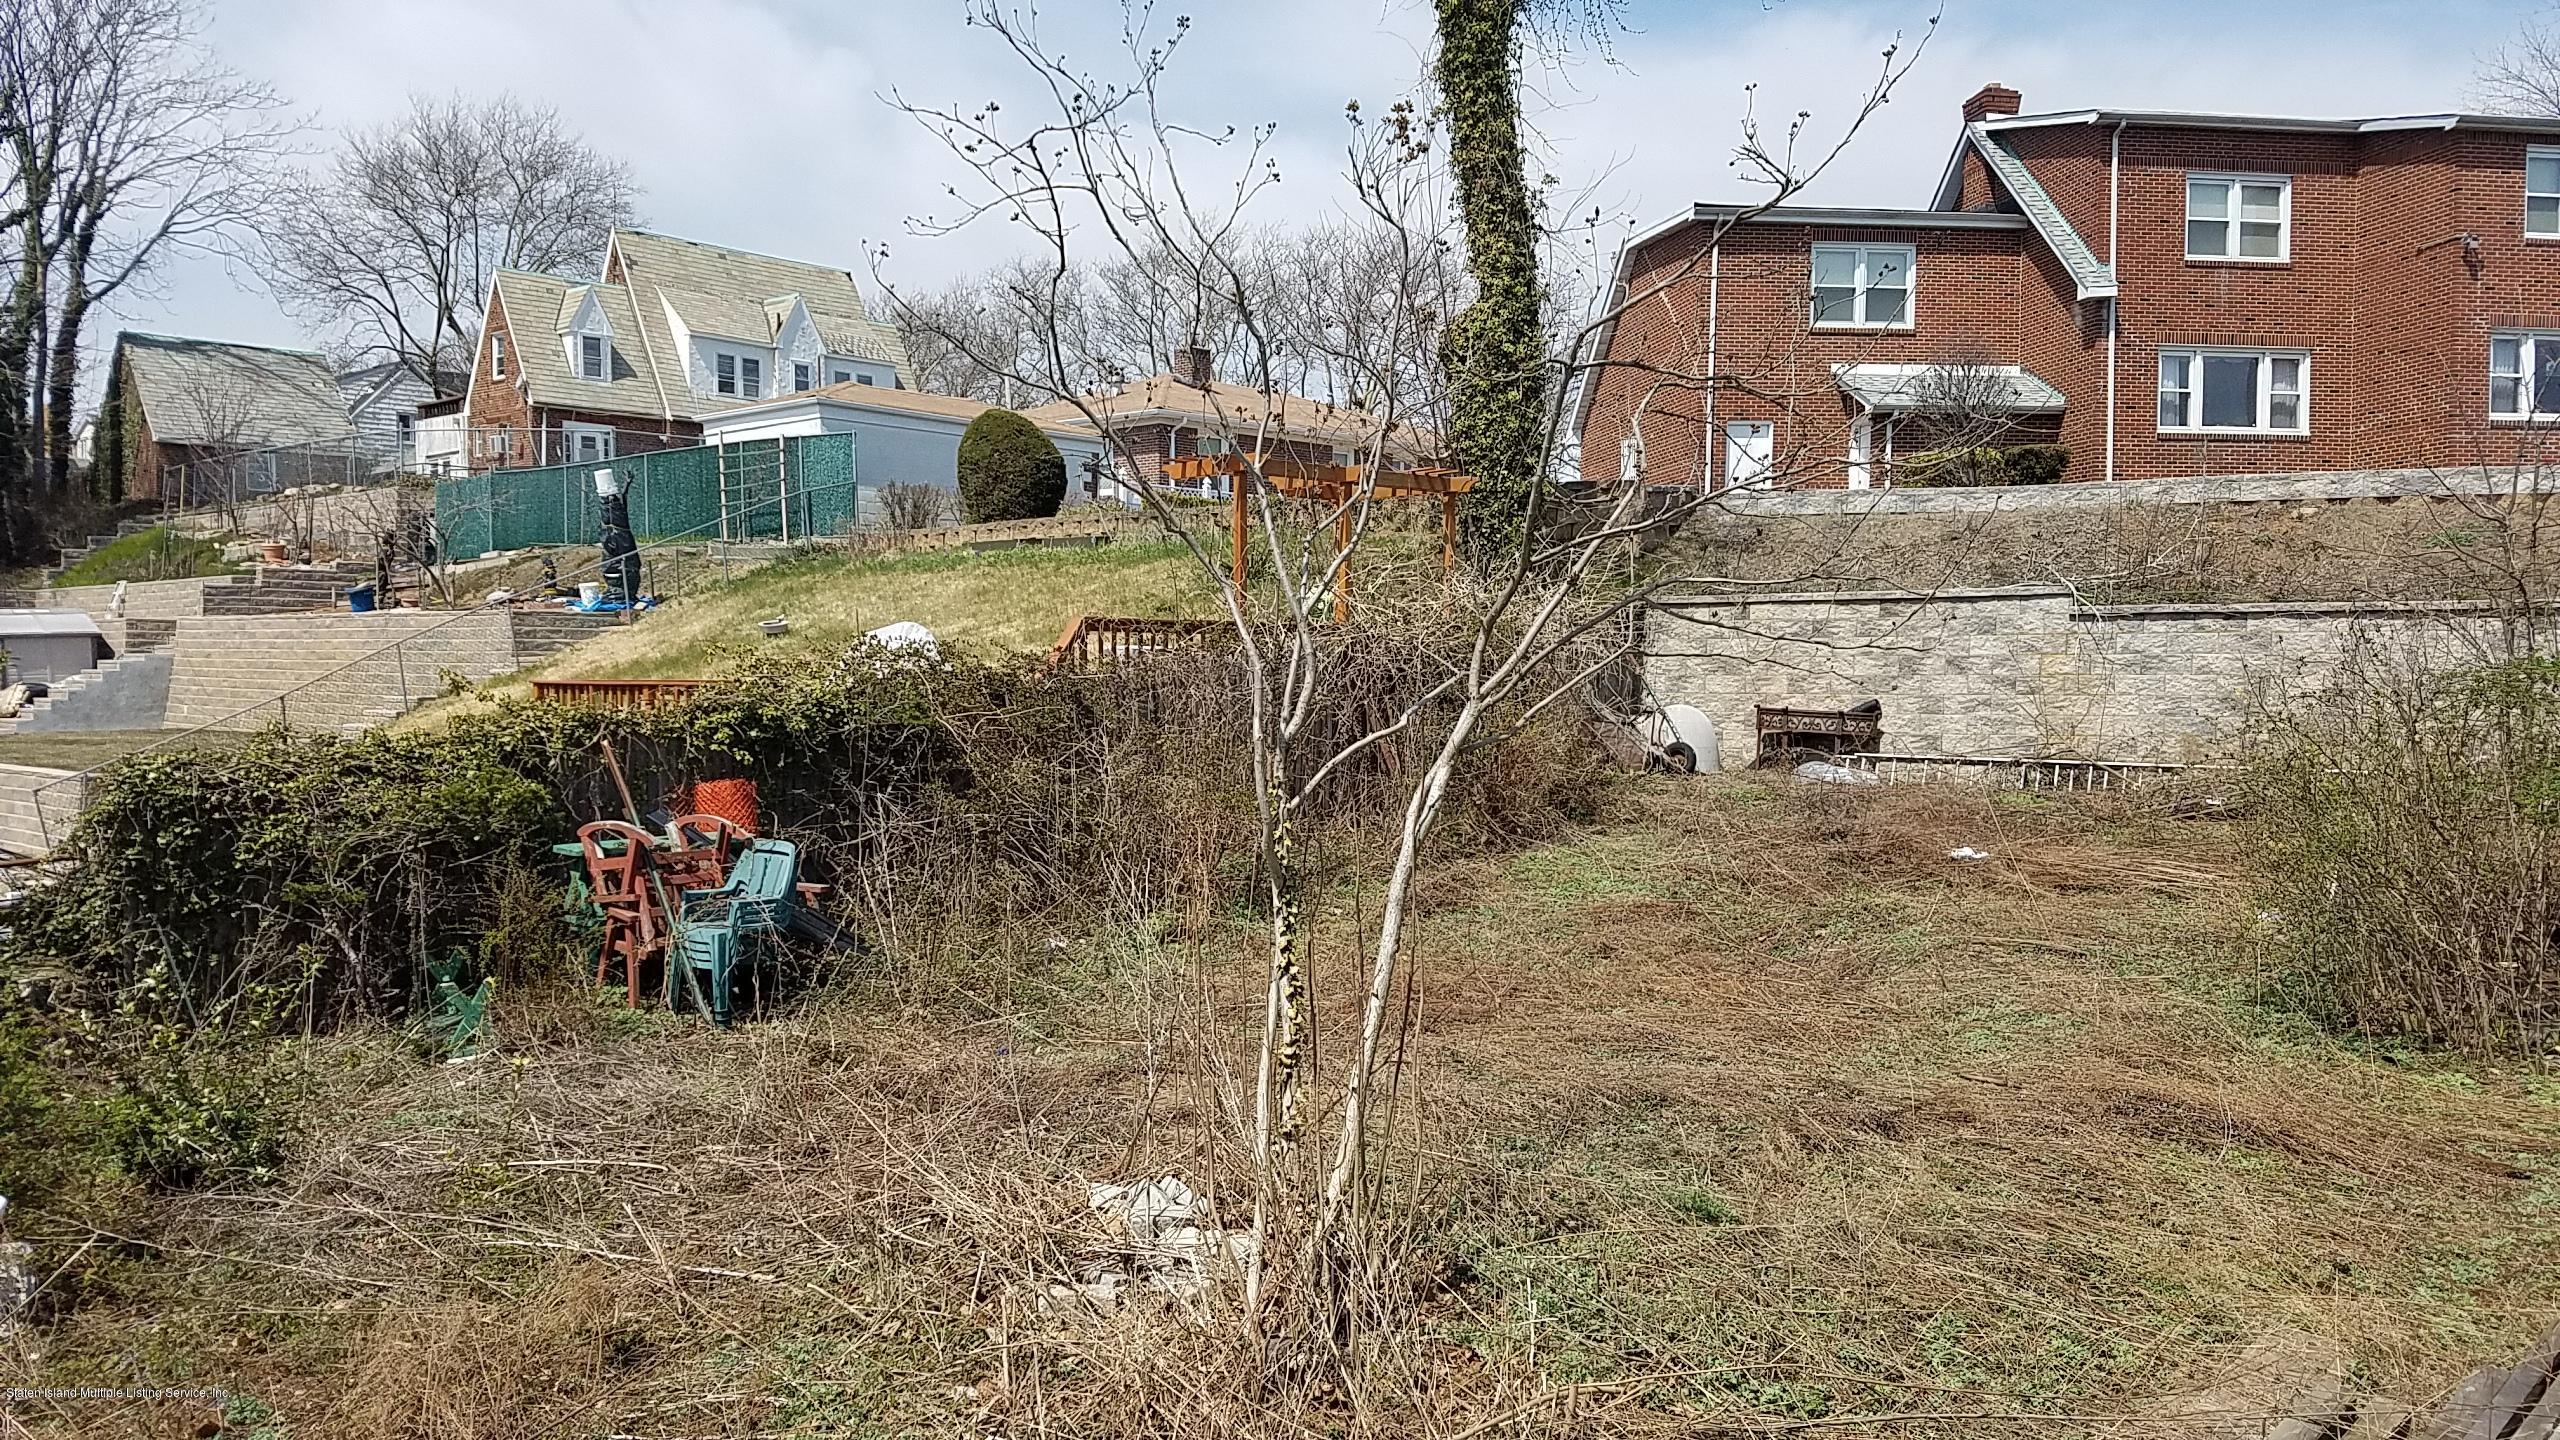 Land/Lots 603 West Fingerboard Road   Staten Island, NY 10305, MLS-1118359-5